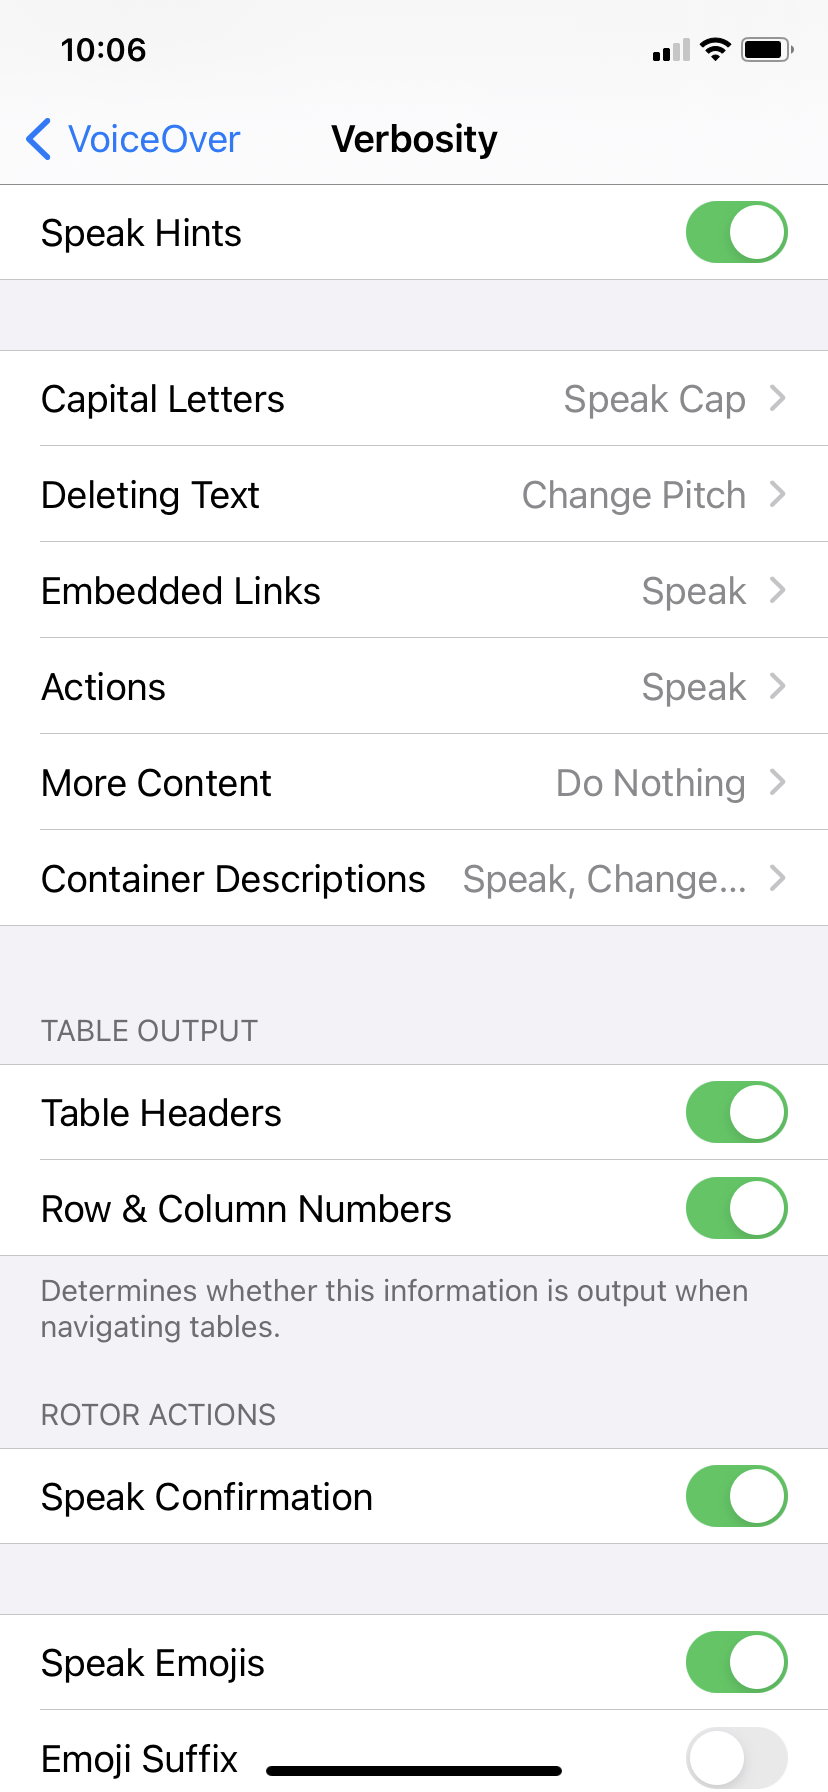 VoiceOver verbosity settings used for this chapter